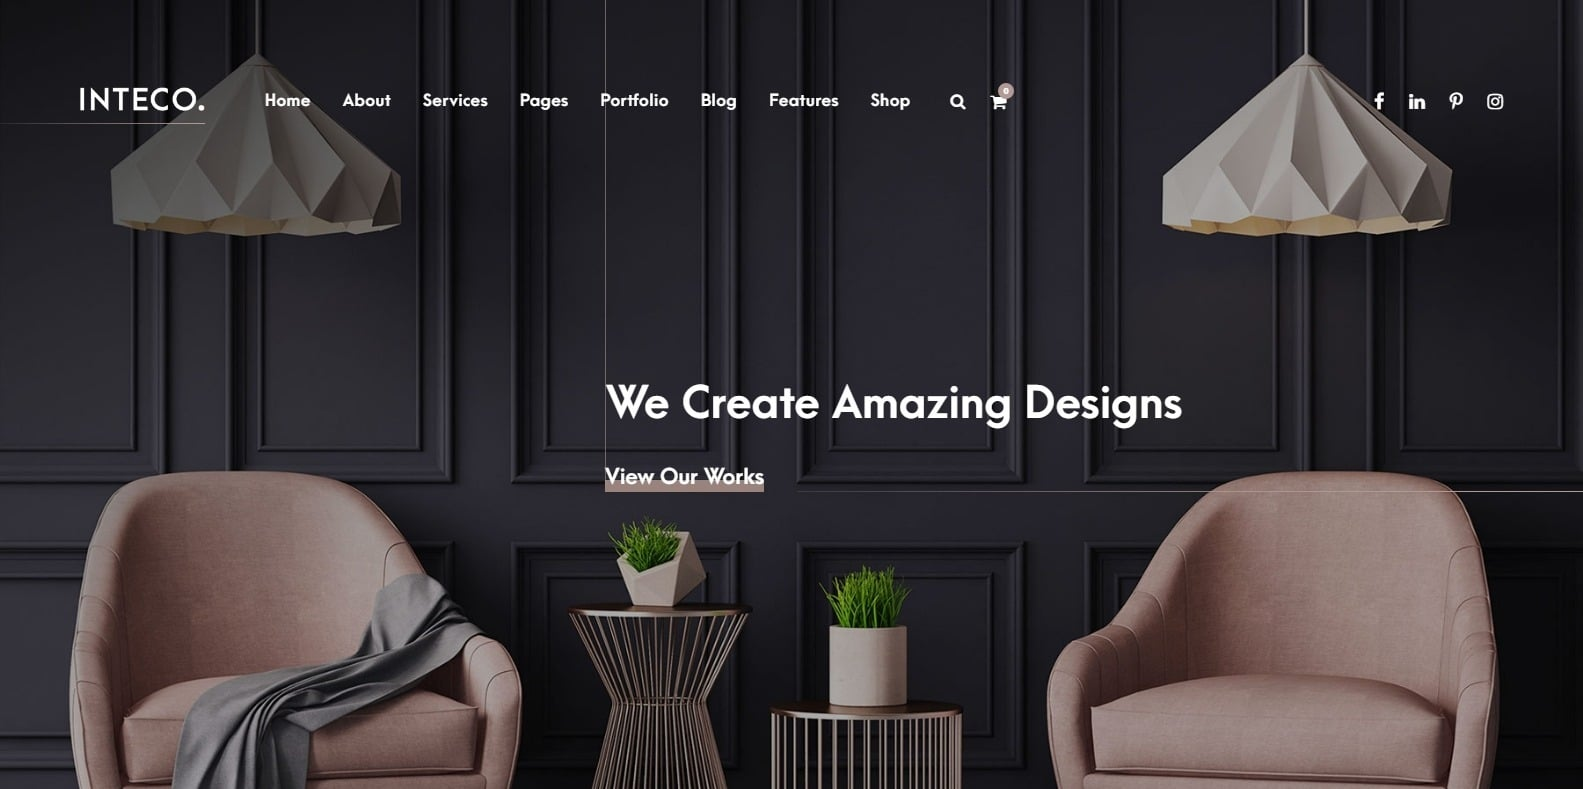 inteco-interior-design-wordpress-theme